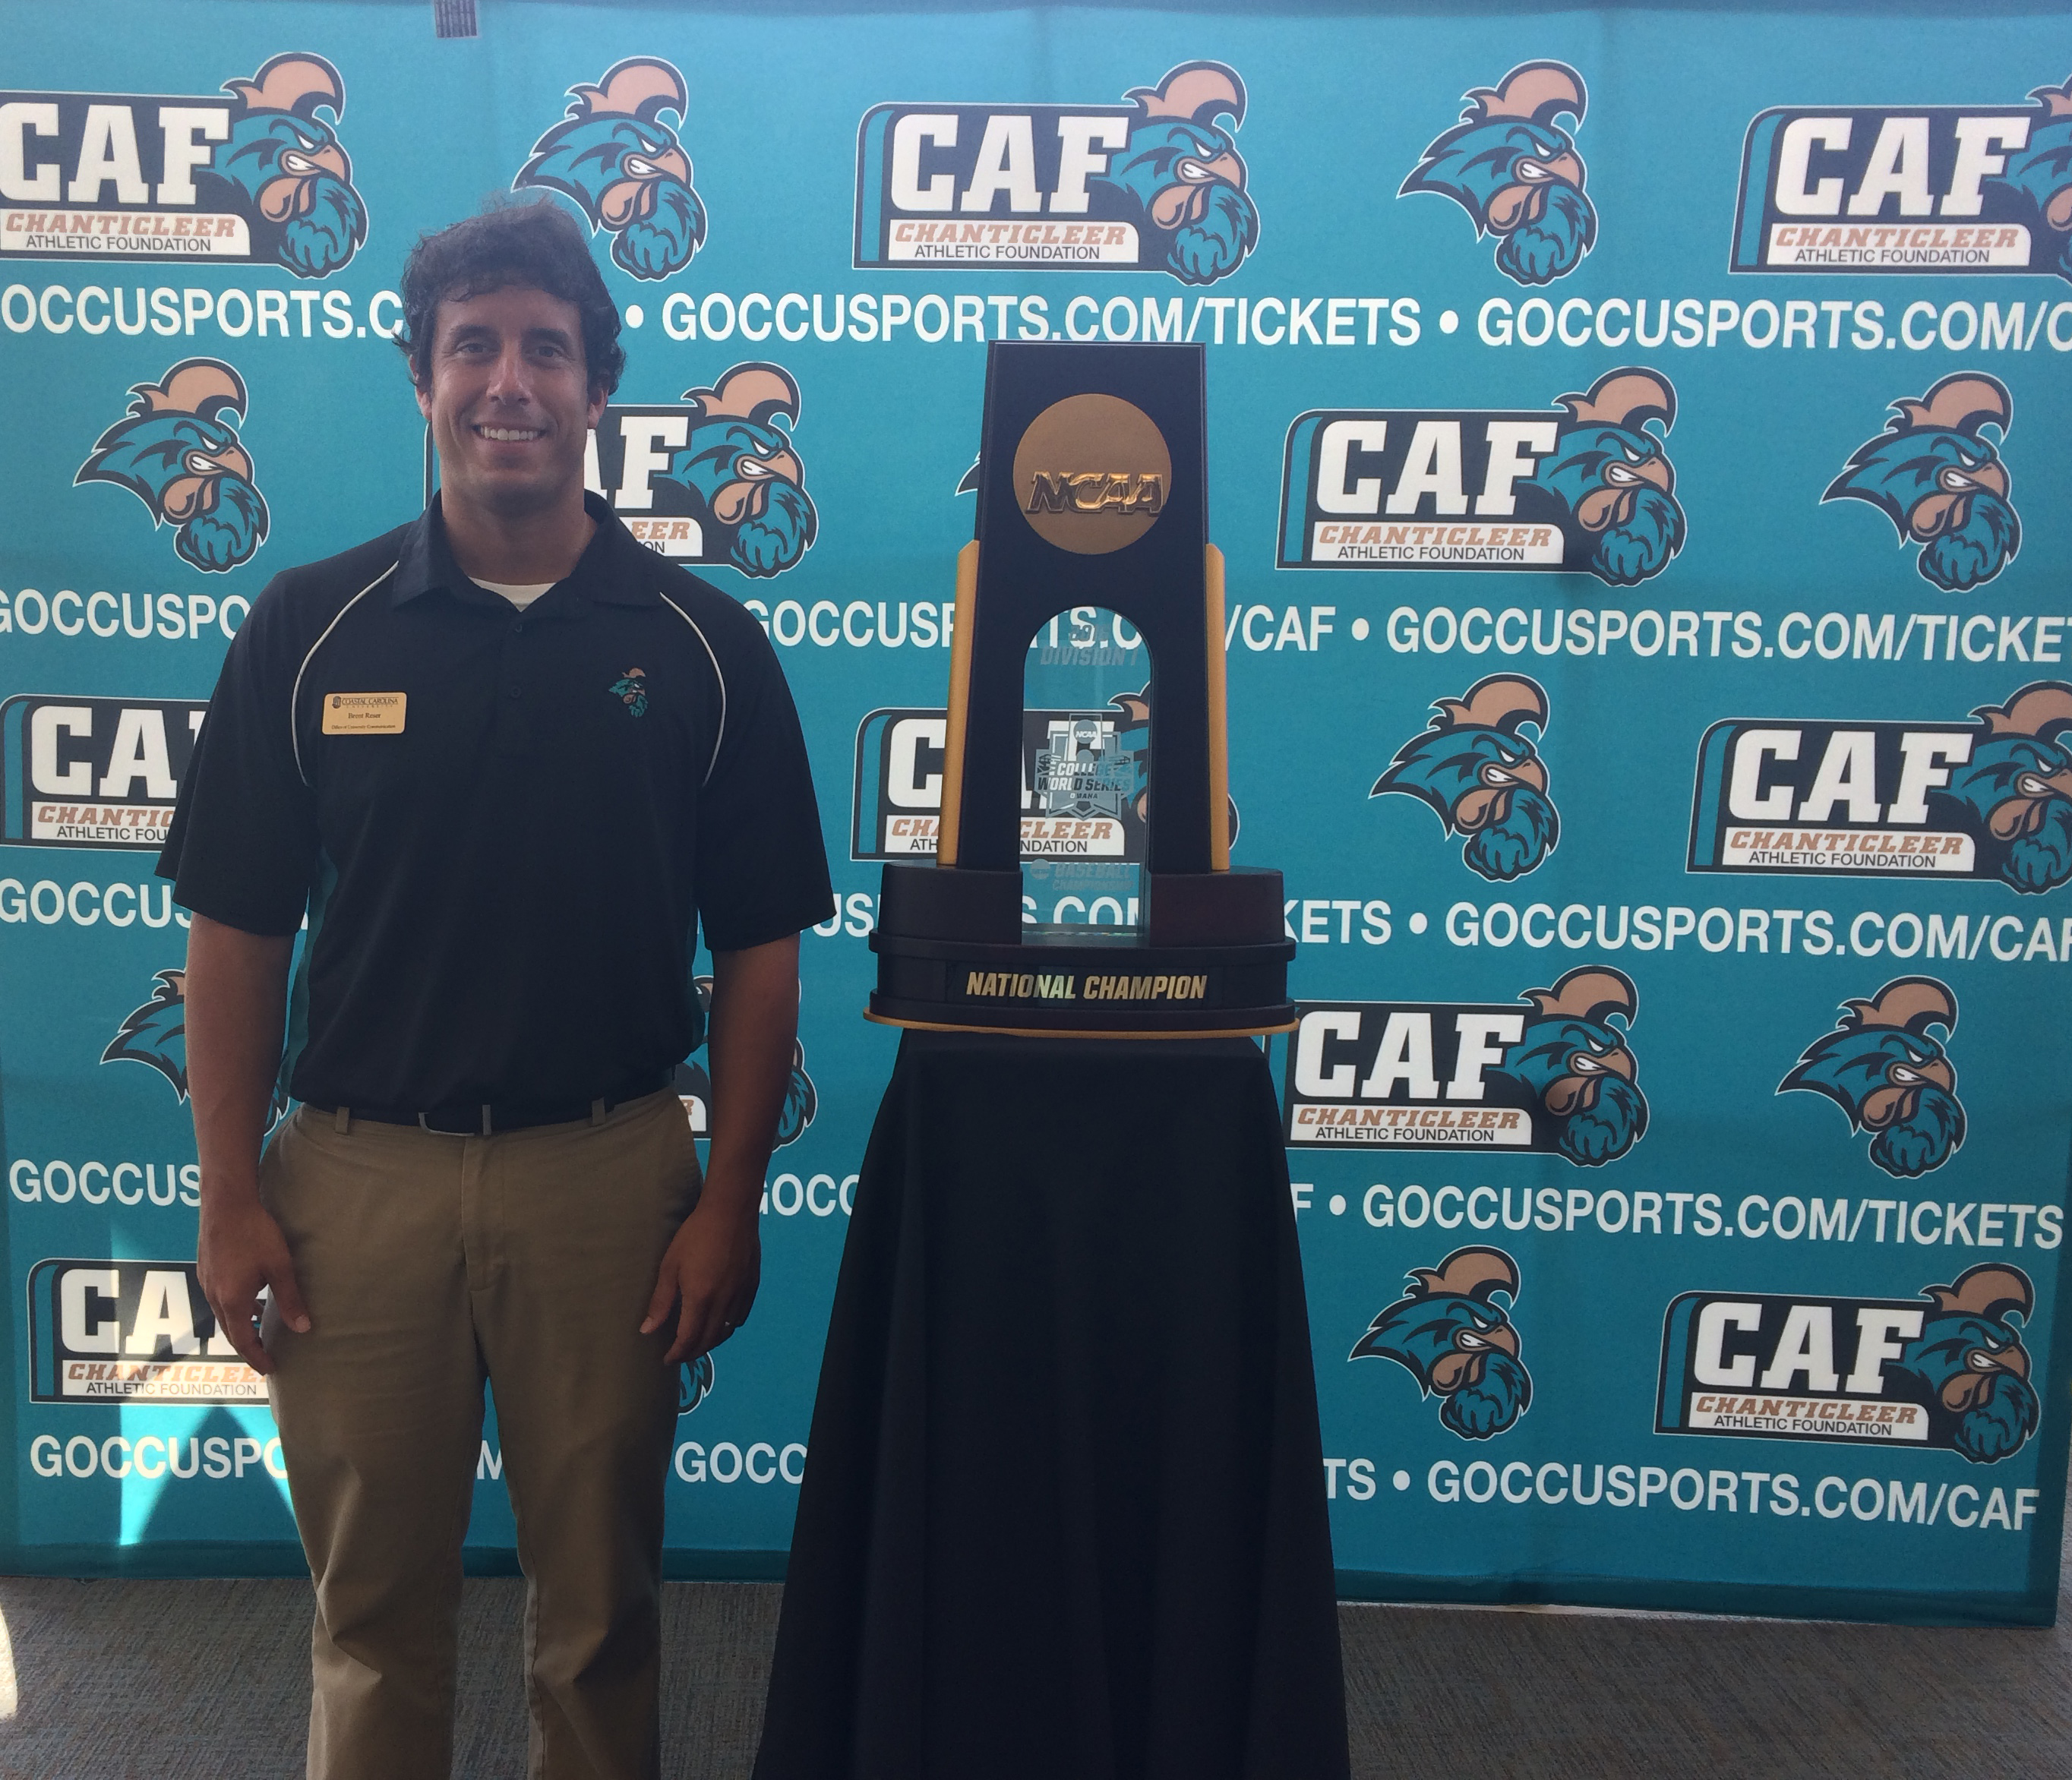 Today I took a photo with the national championship trophy.